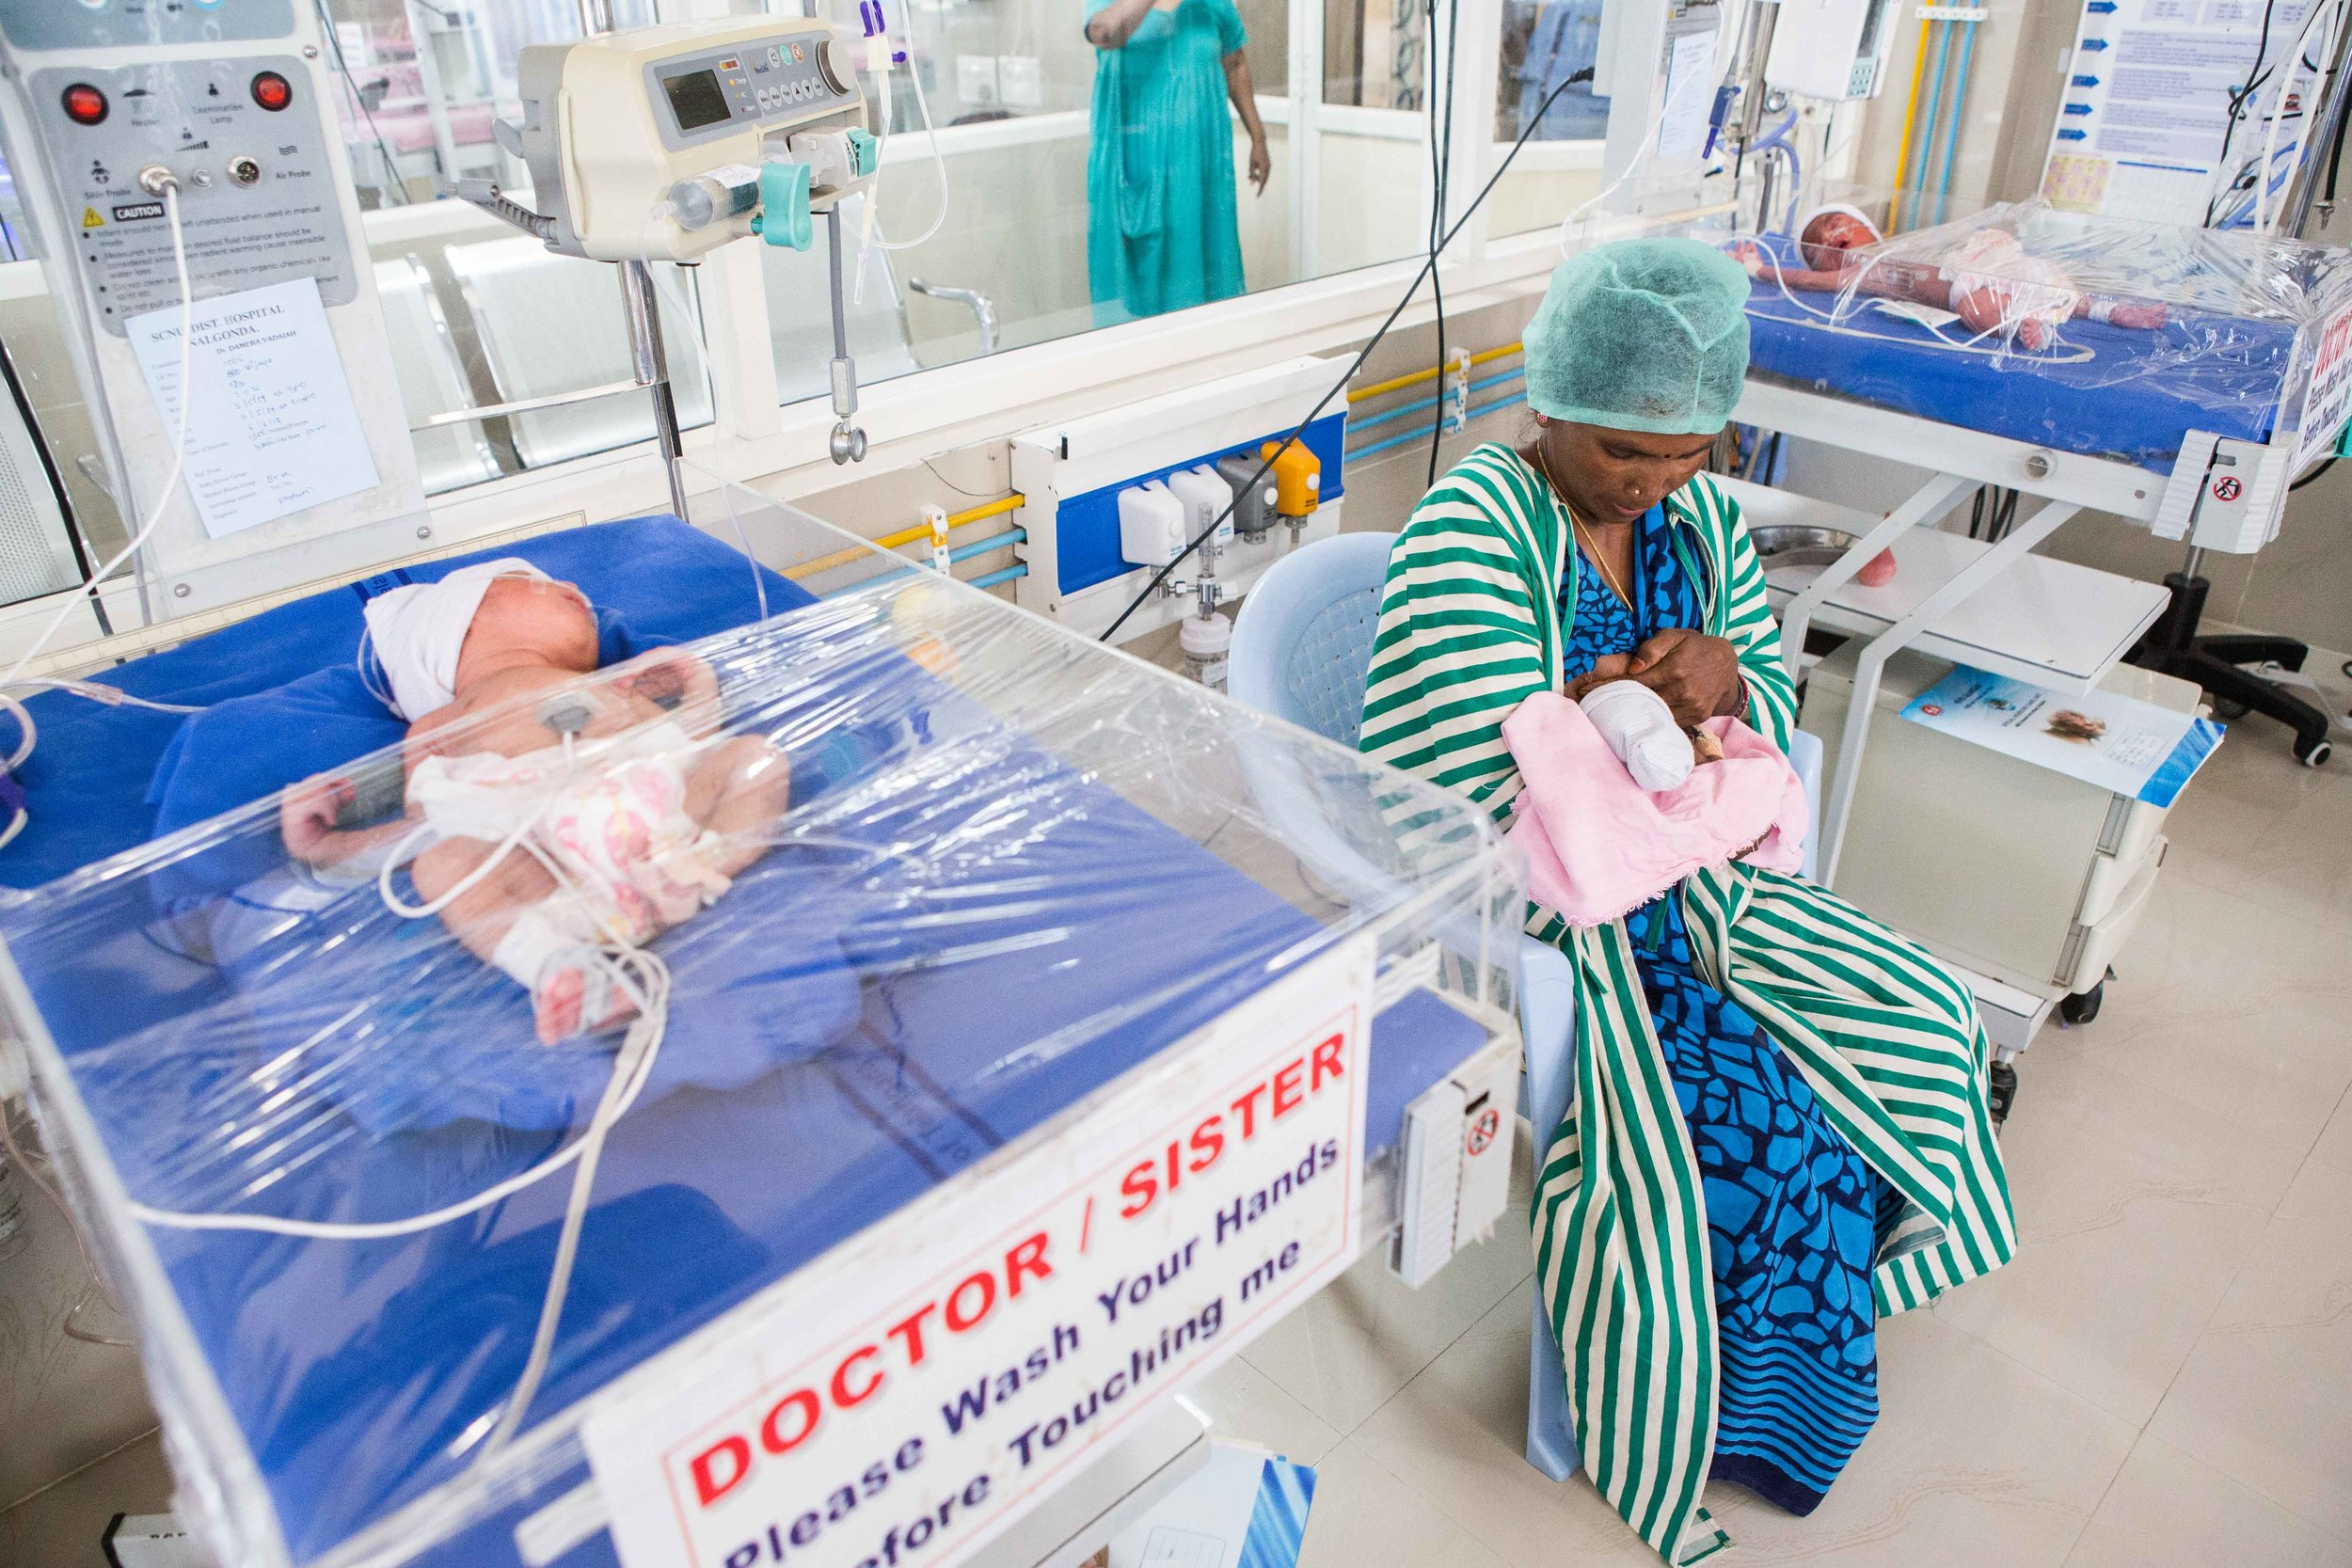 A ROP baby being breast fed by the mother in the NICU. District Hospital Nalagonda, Telangana